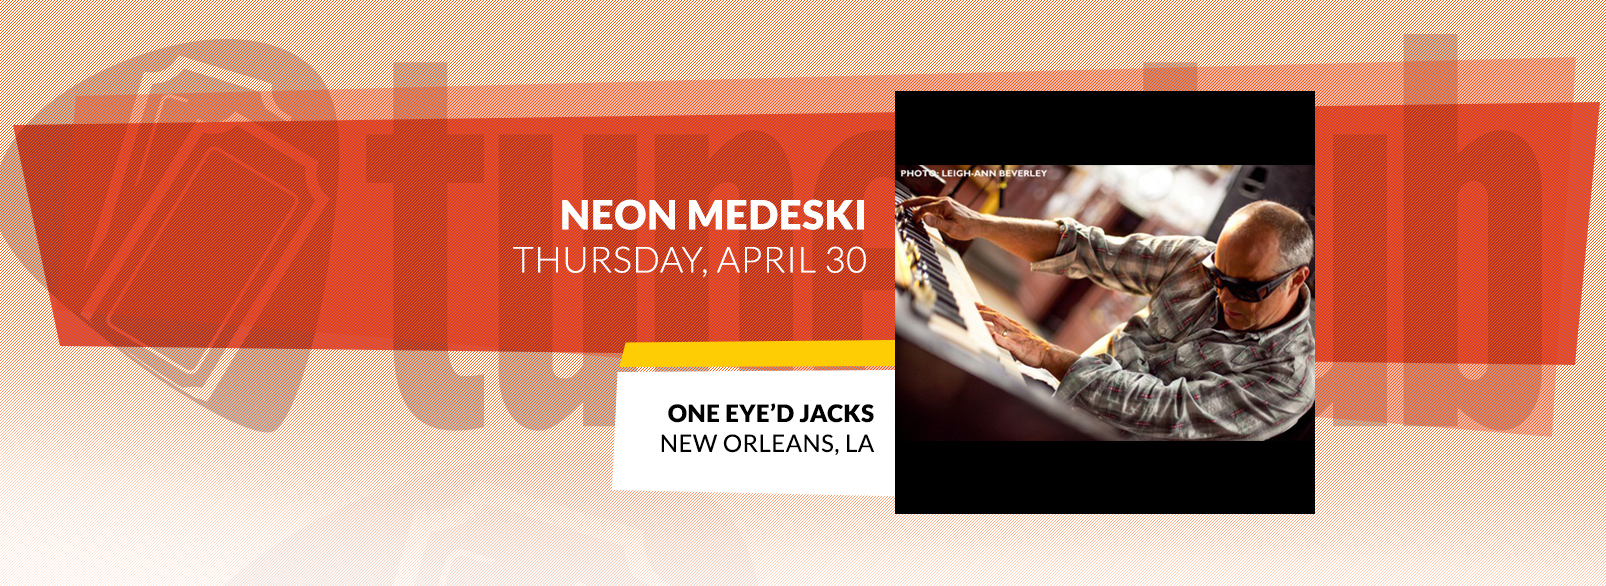 Neon Medeski @ One Eye'd Jacks